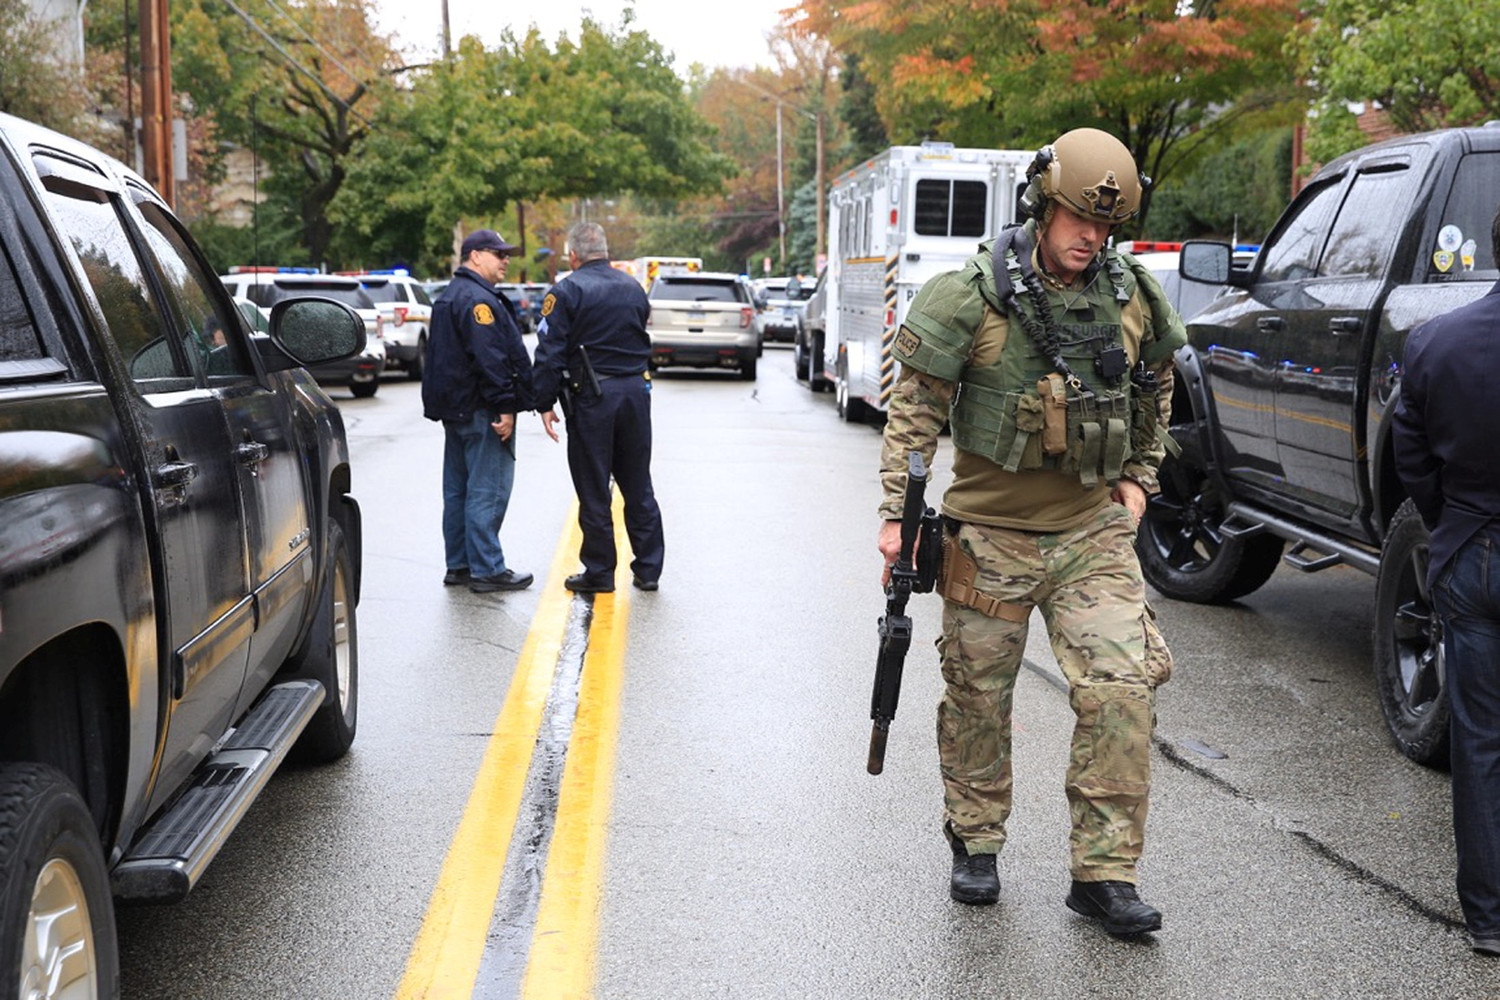 A SWAT police officer and other first responders are seen Oct. 27 after a gunman killed at least four people at the Tree of Life Synagogue in Pittsburgh. Robert Bowers opened fire that morning during a service at the synagogue, also wounding at least six others, including four police officers, authorities said.